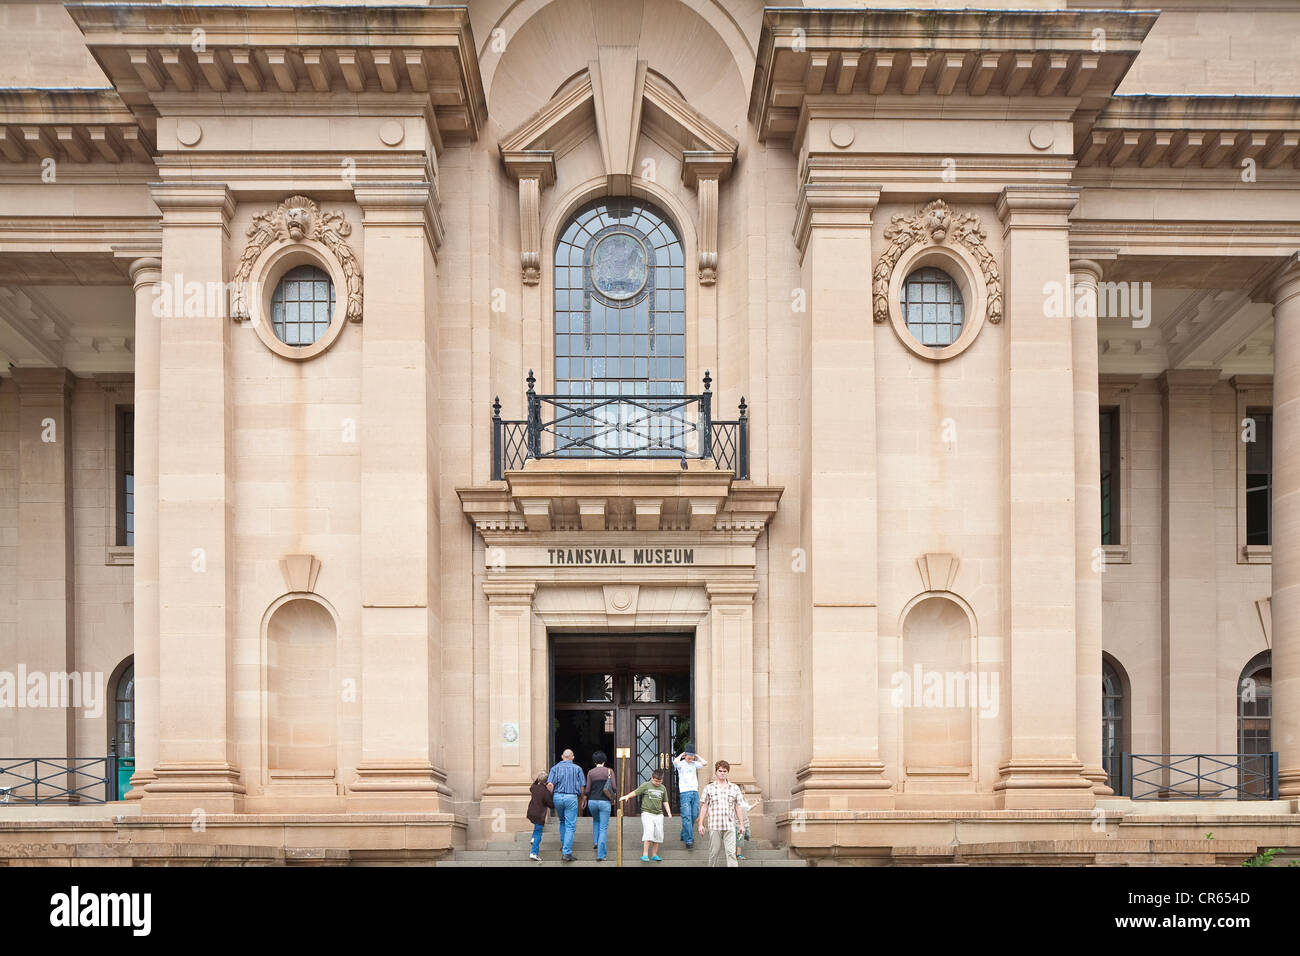 South Africa, Gauteng Province, Pretoria, Transvaal Museum of Natural History created in 1892 - Stock Image